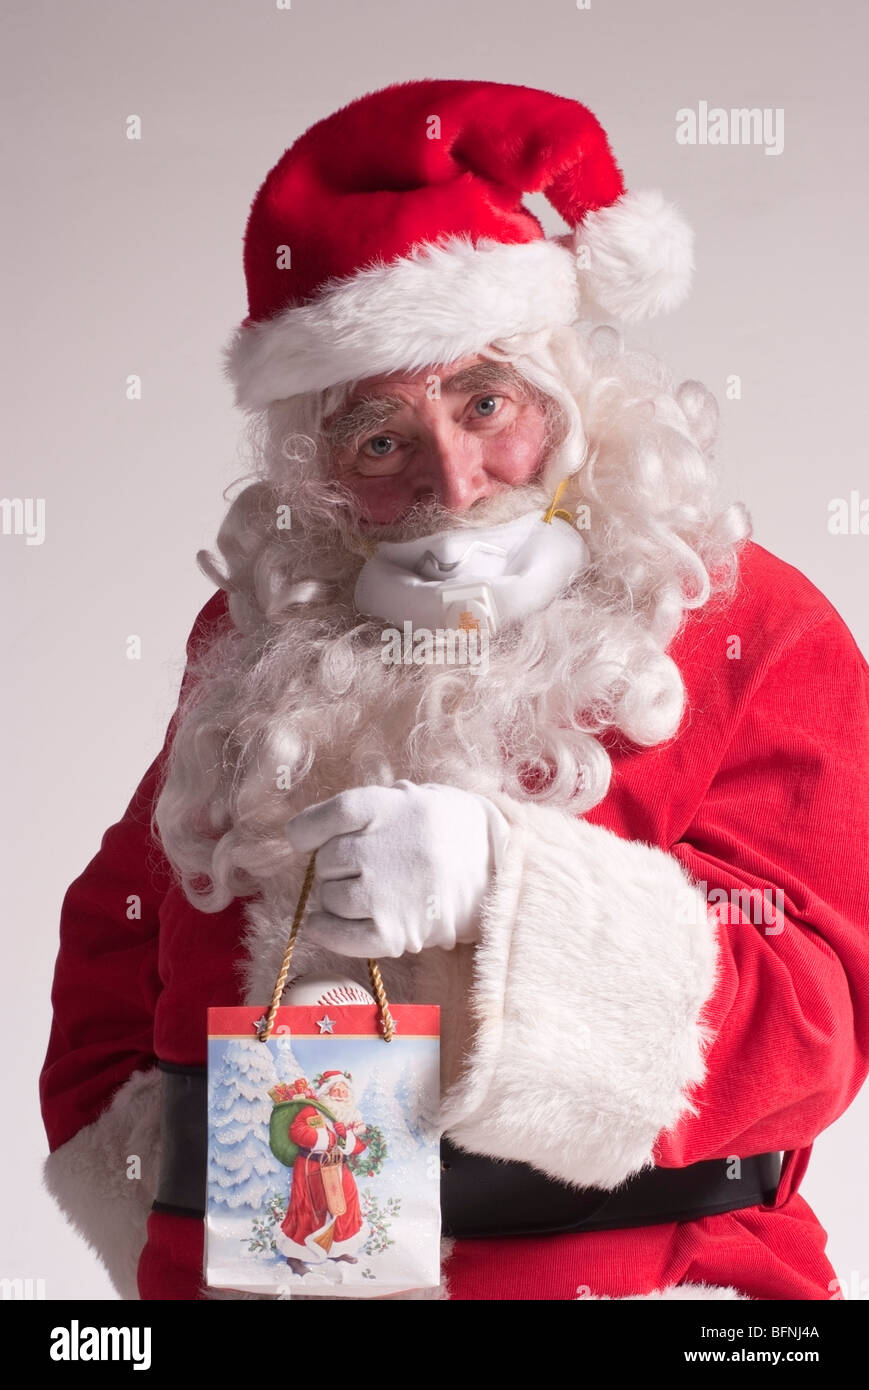 65-year-old man dressed as Santa Claus for Christmas wearing a breathing mask to protect against the H1N1 virus - Stock Image